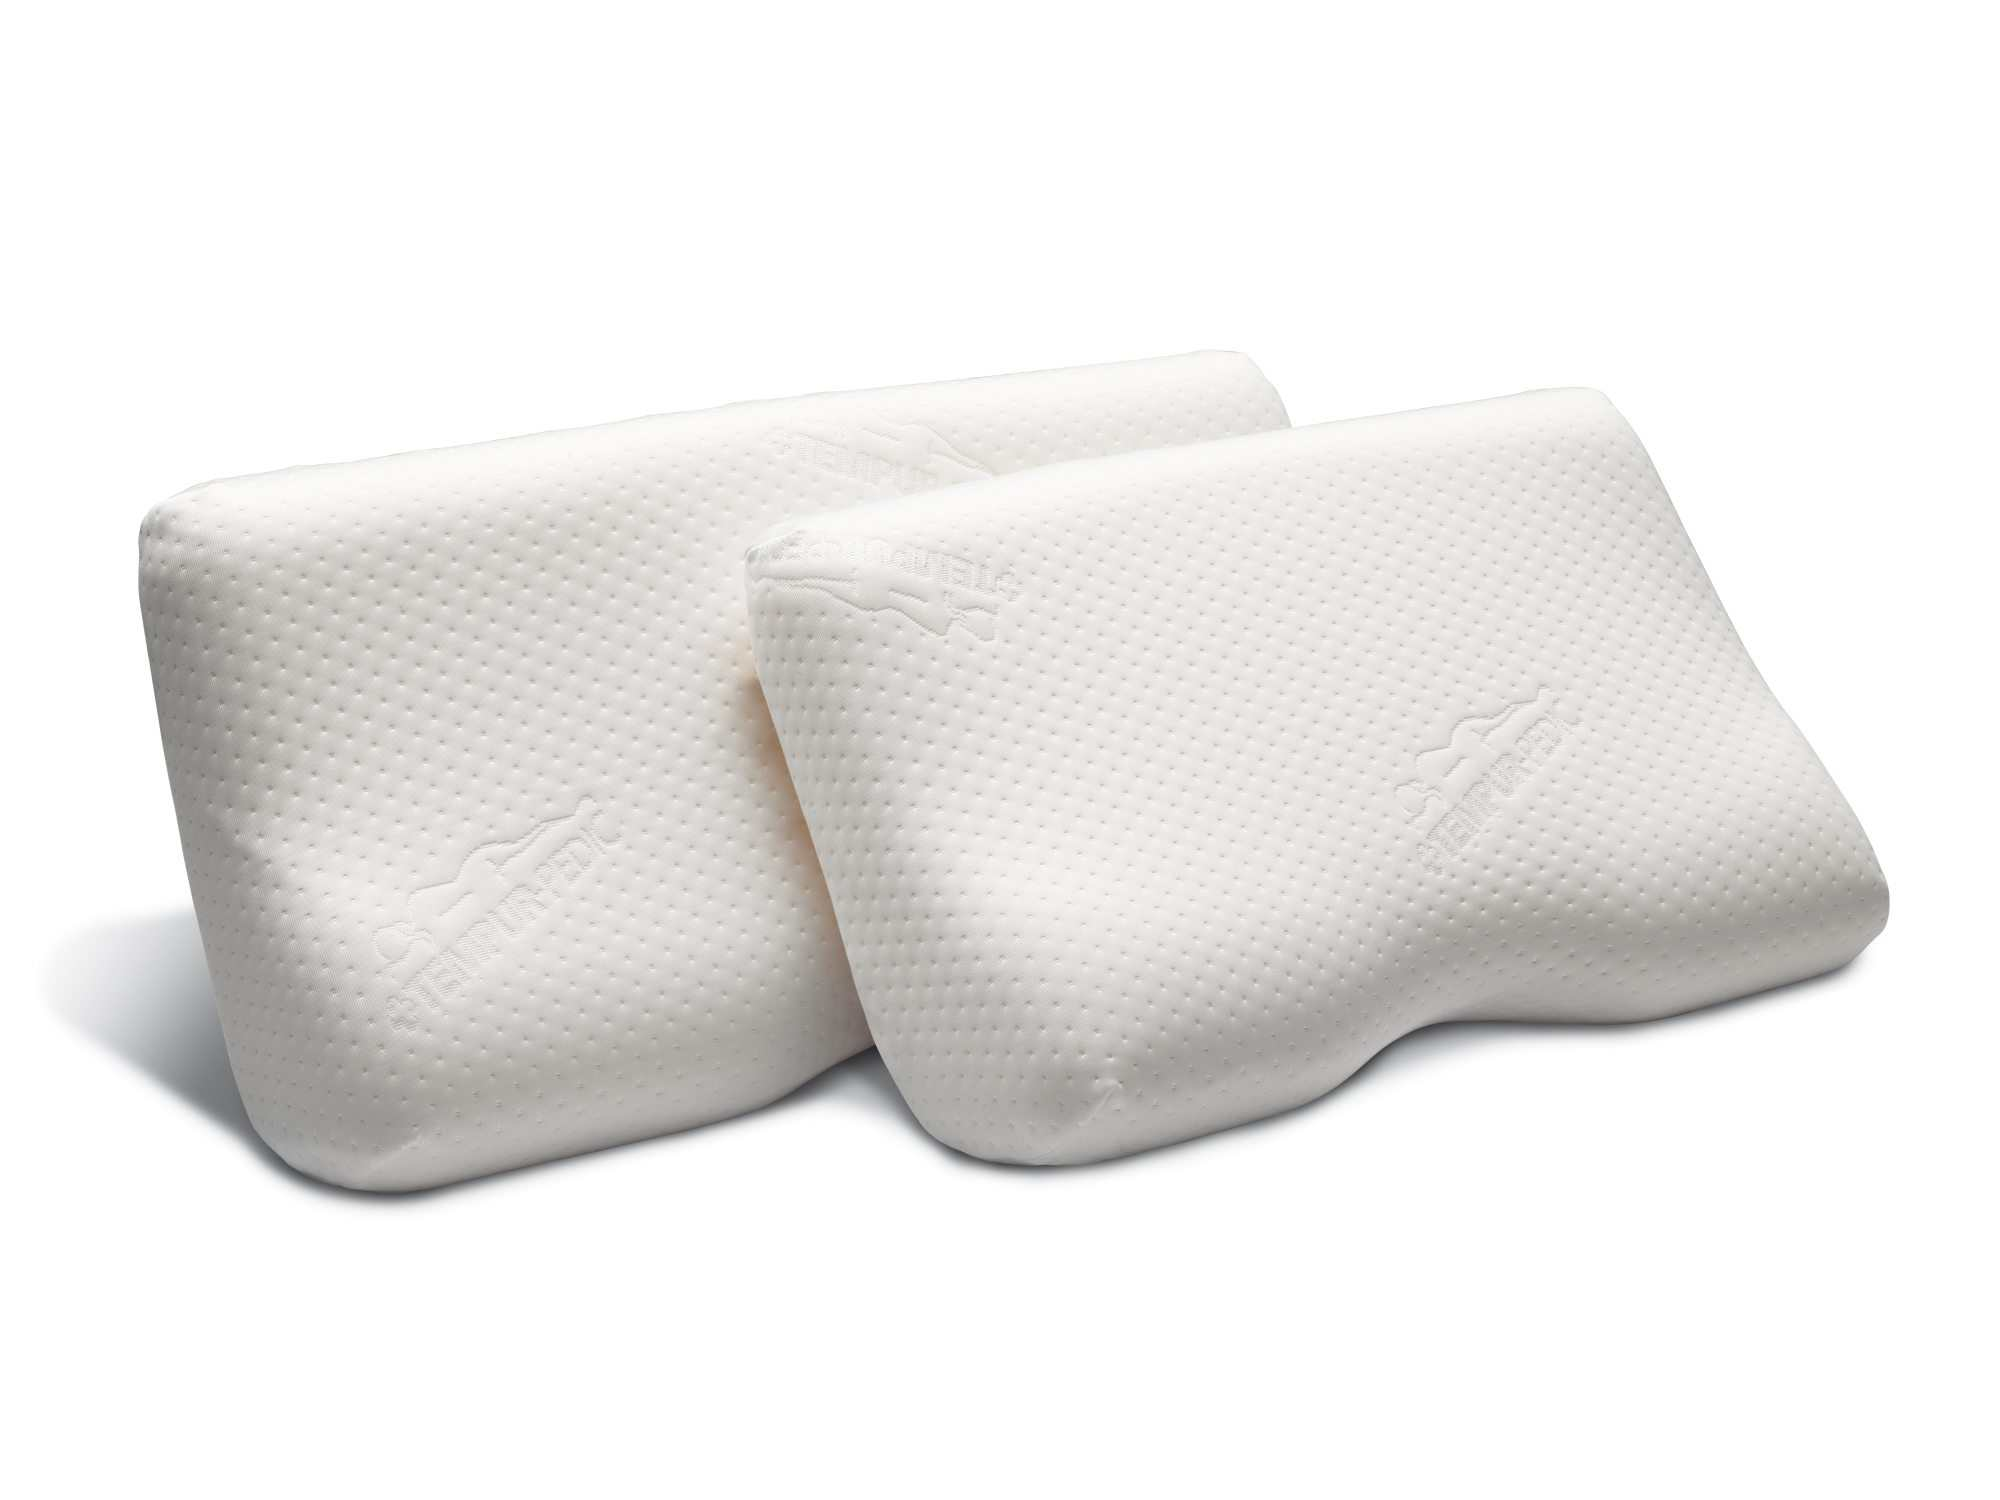 How To Use Tempurpedic Neck Pillow Tempur Pedic Side Pillow The Back Store